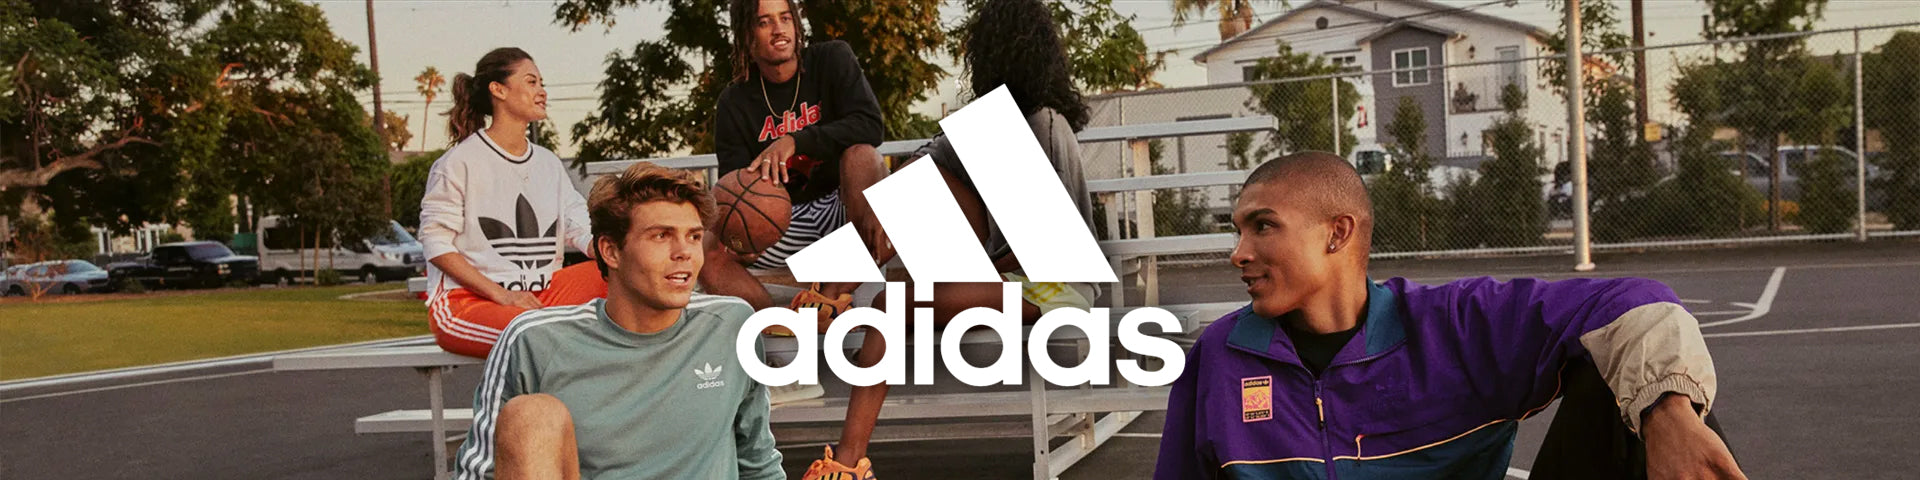 SVP Sports - adidas Collection Page Banner